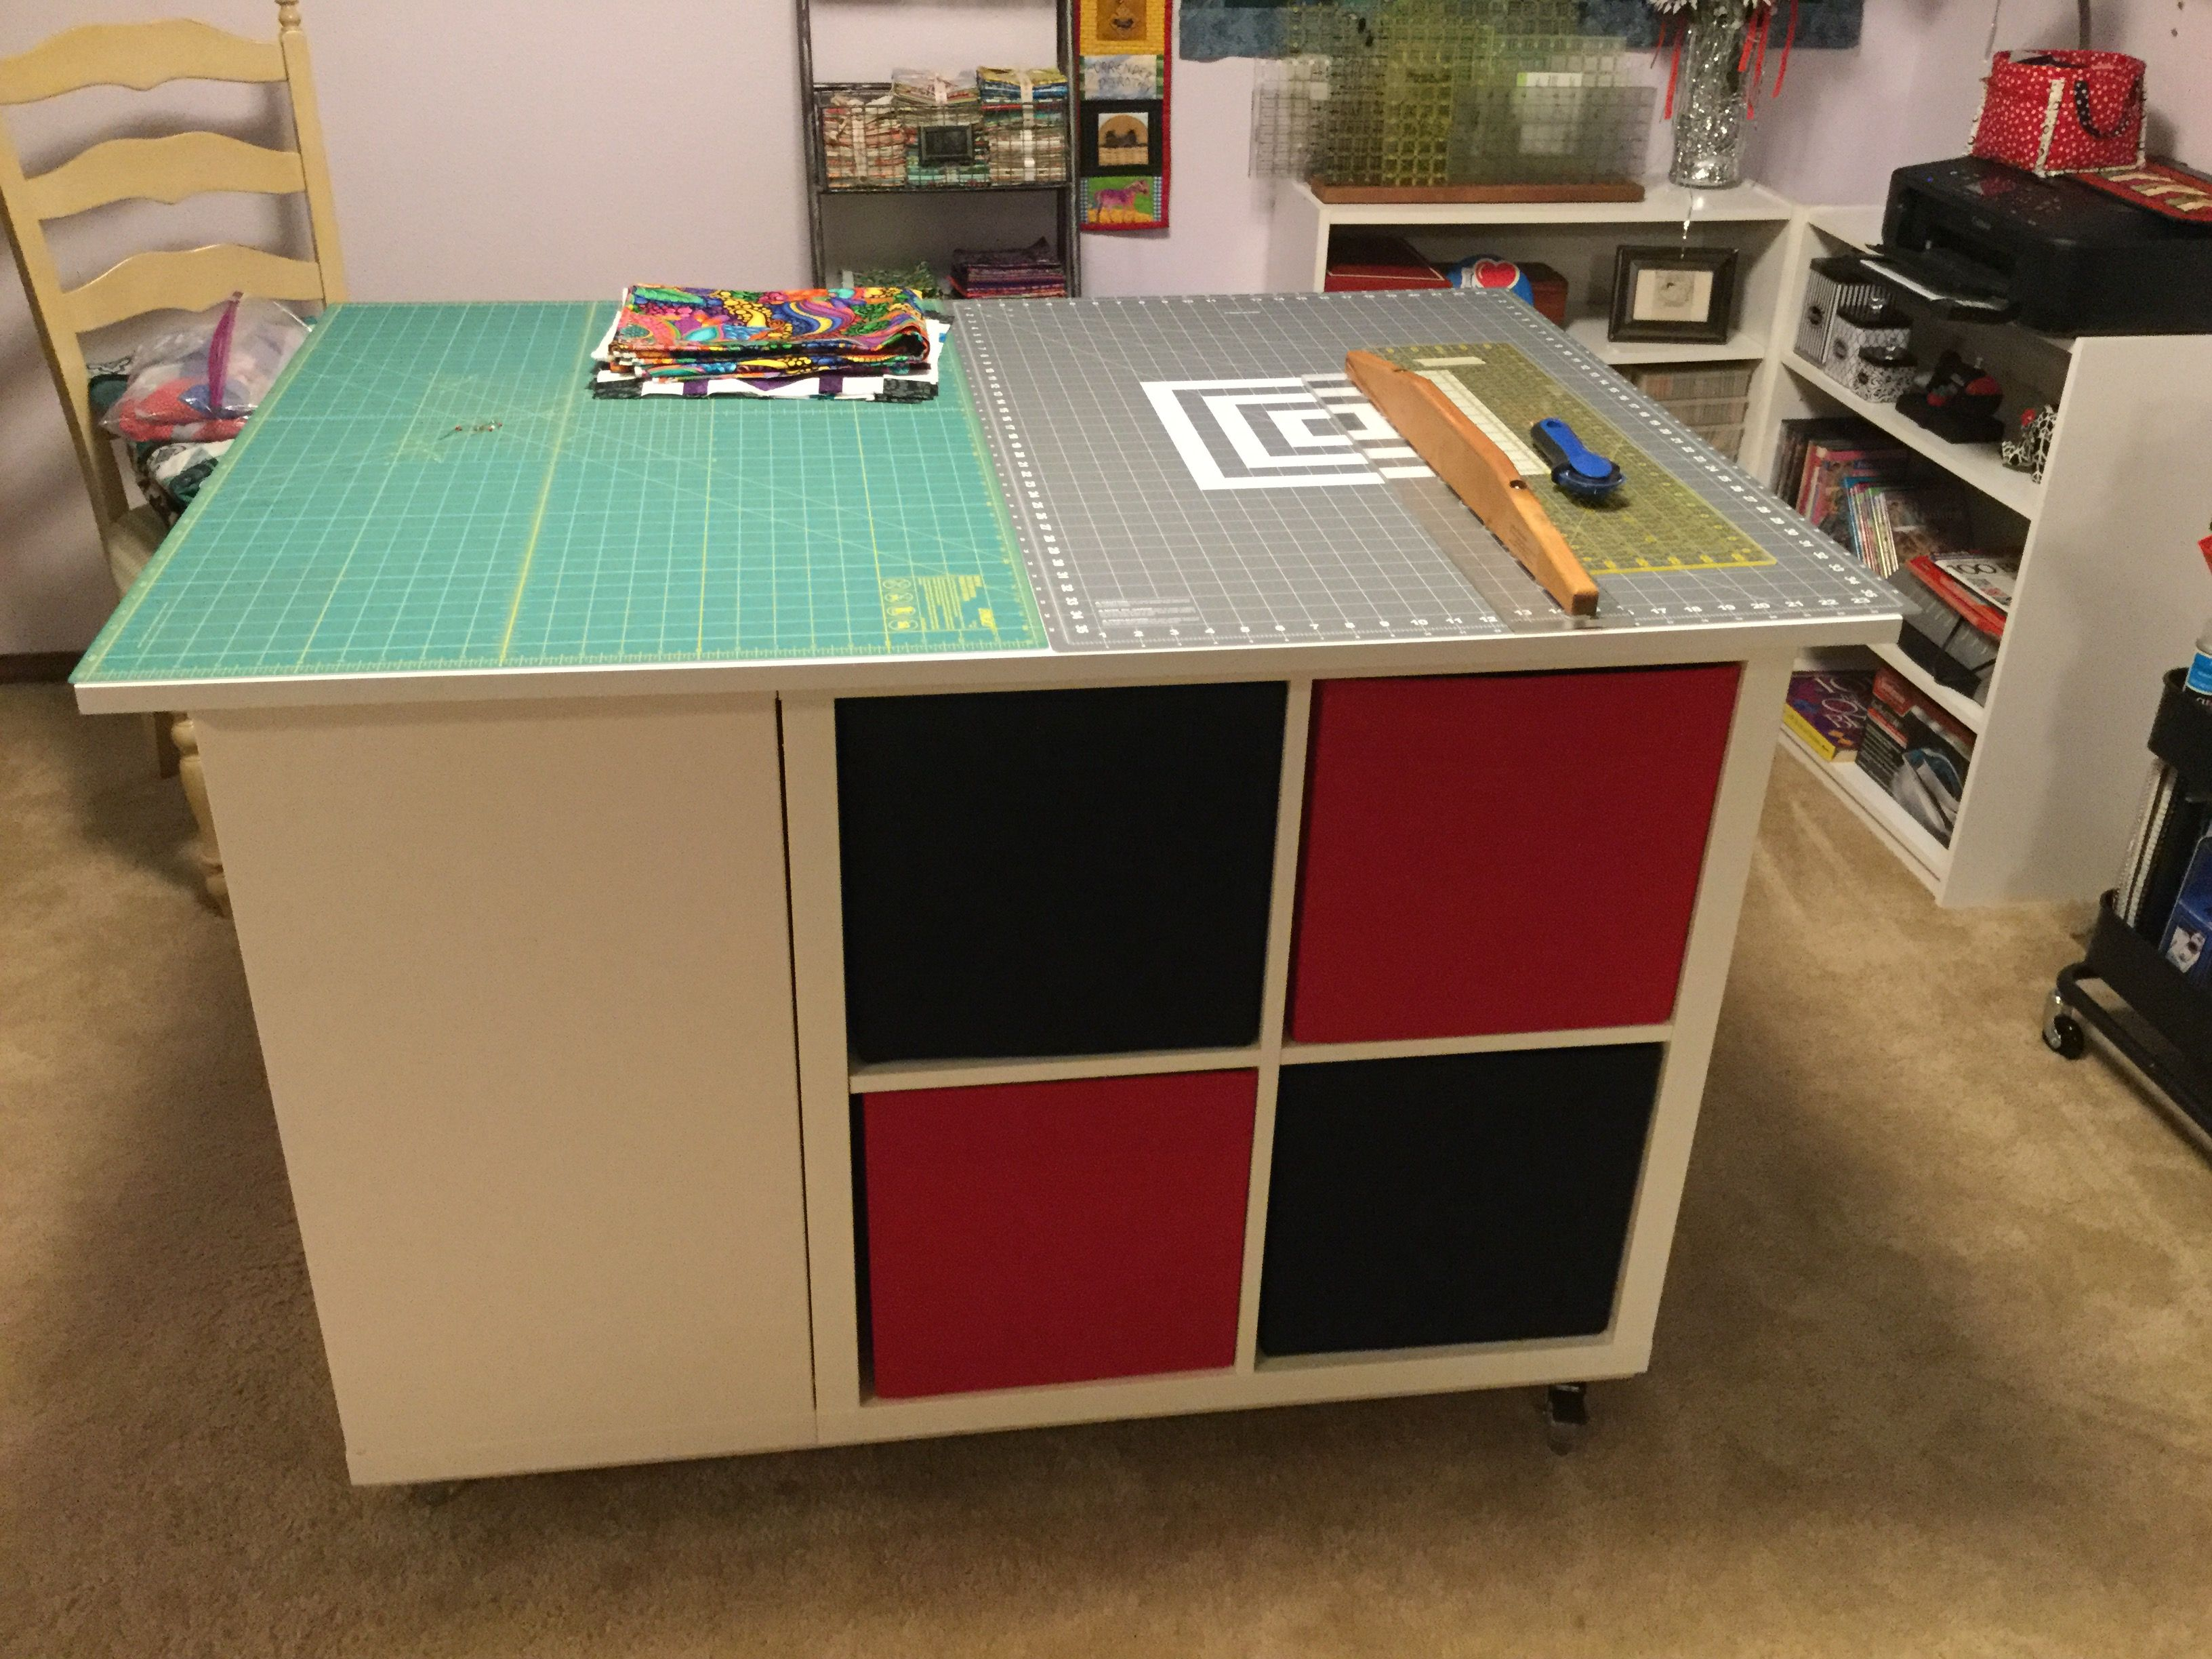 Quilters Cutting Table Made With 3 Kallex Shelves From Ikea